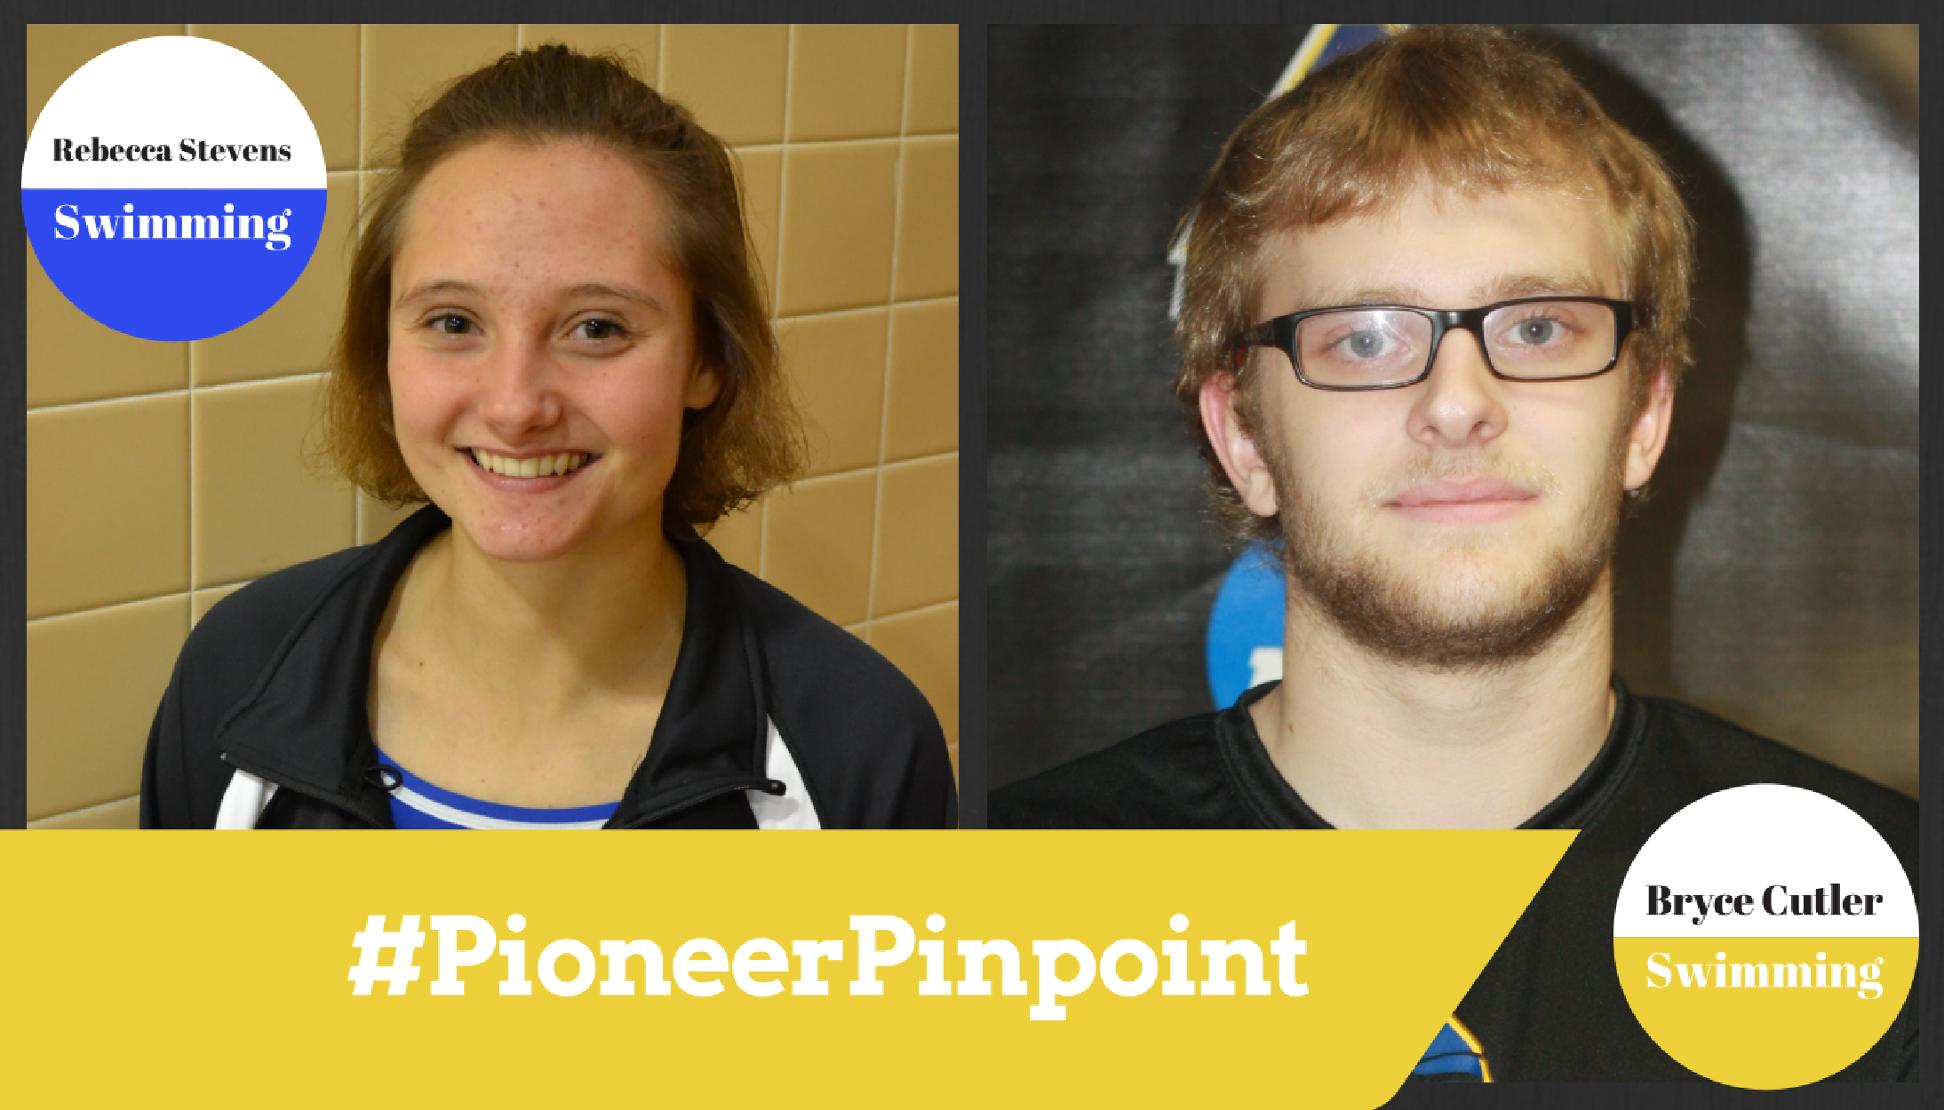 Stevens Honored by AMCC, Named #PioneerPinpoint Athlete of the Week with Cutler